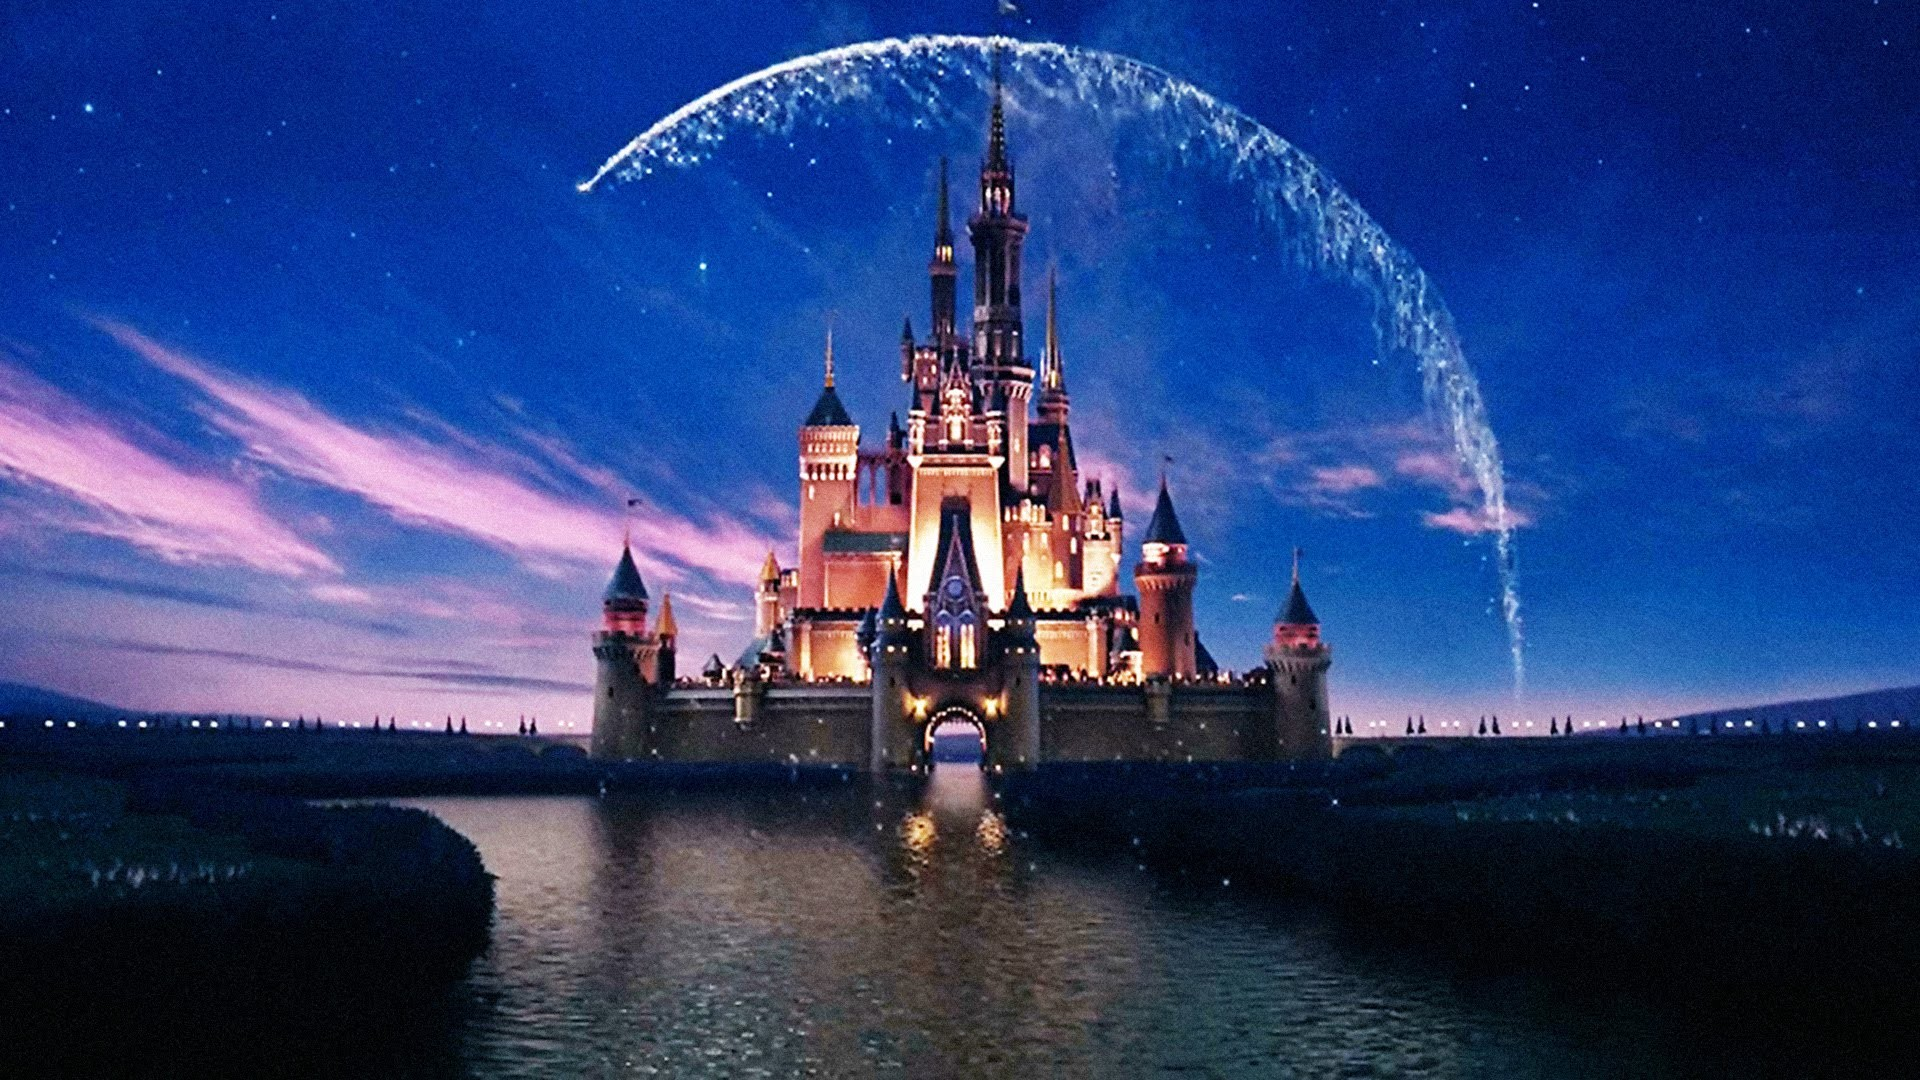 1920x1080 free download disney background 1920x1080 for android